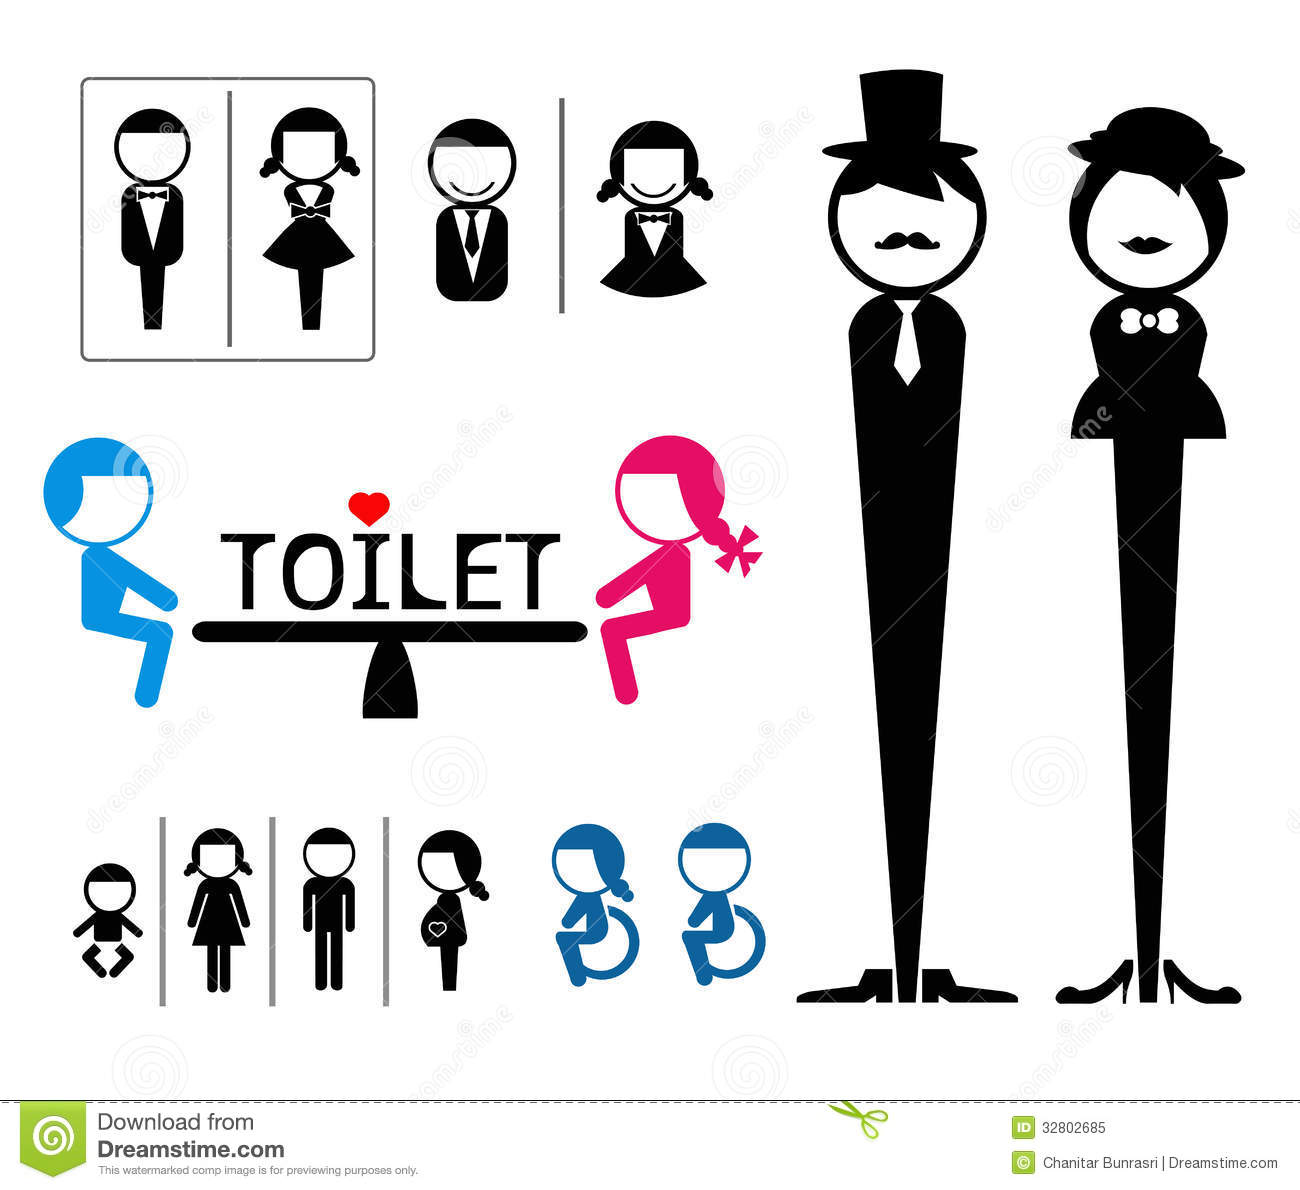 Toilet Sign Stock Vector. Illustration Of Door, People